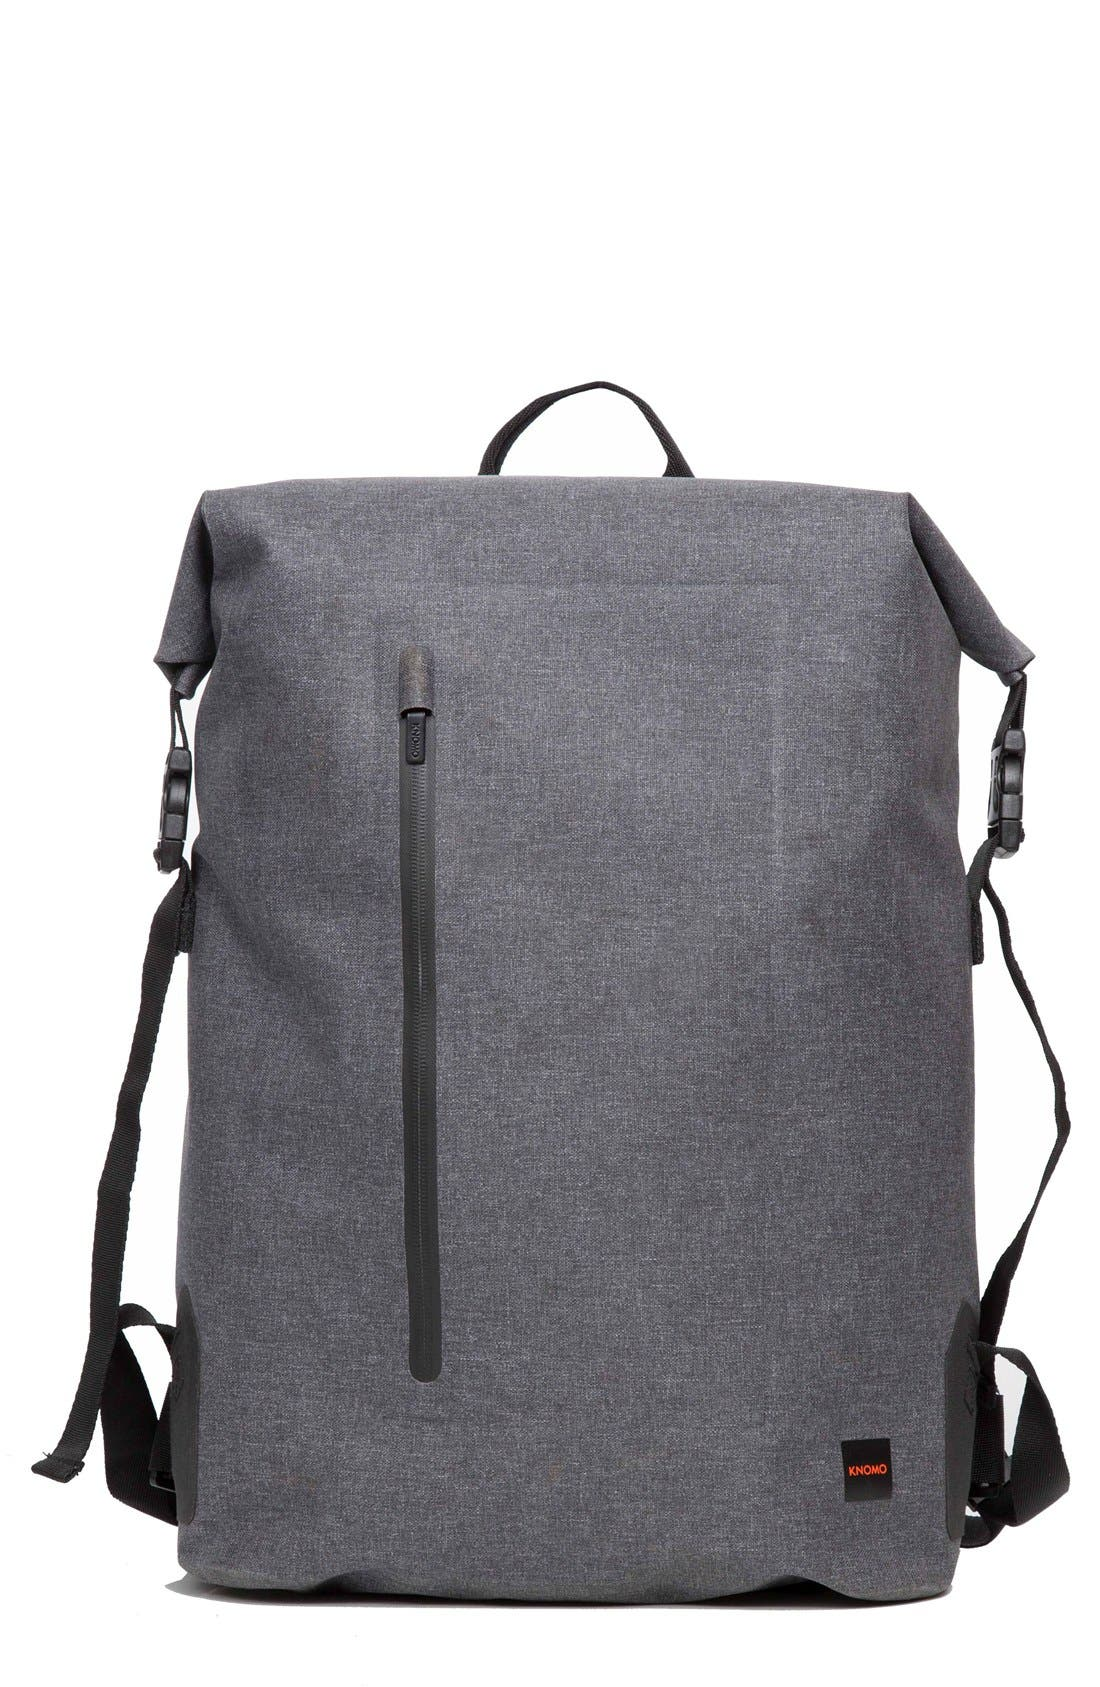 Main Image - KNOMO London Thames Cromwell Roll Top Backpack